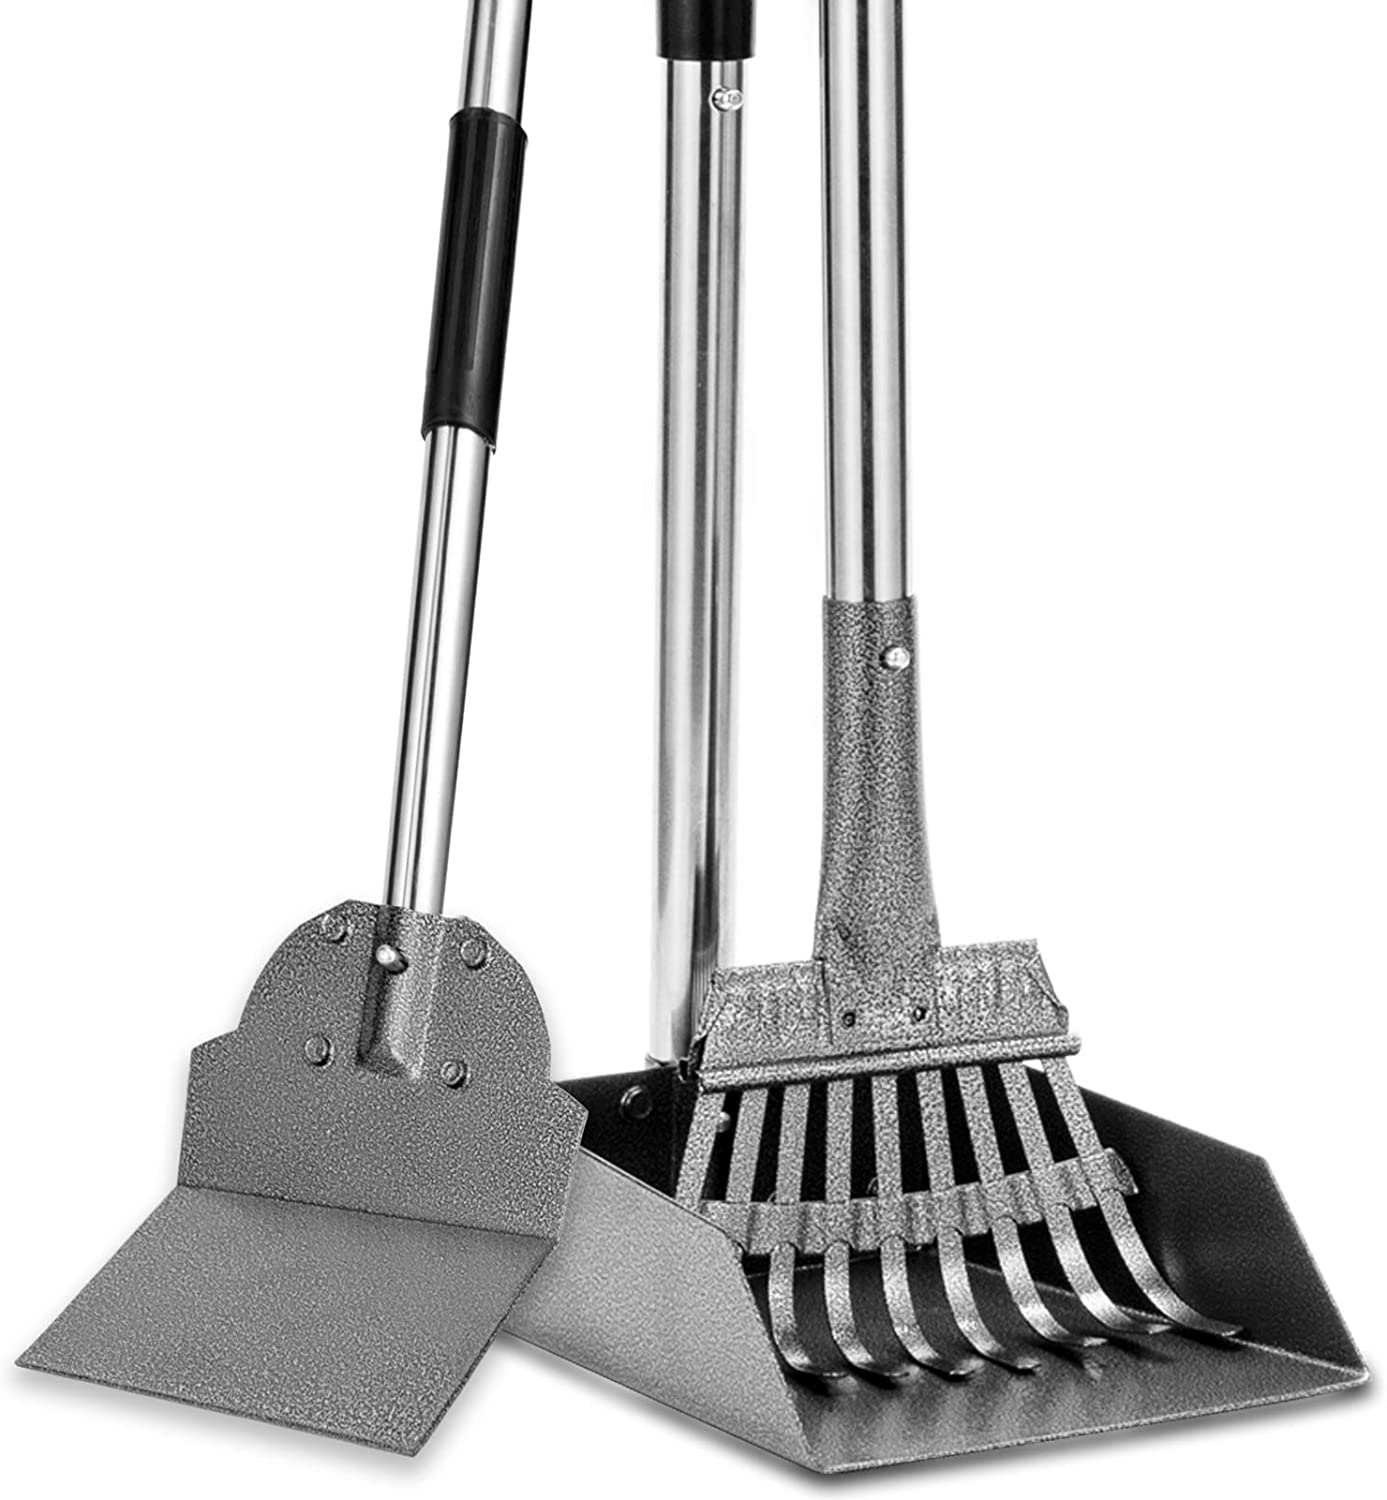 Dog Pooper Scooper Charlotte Mall Tray Rake Special Campaign and 3 Adjus Poop Spade Pack Scoop